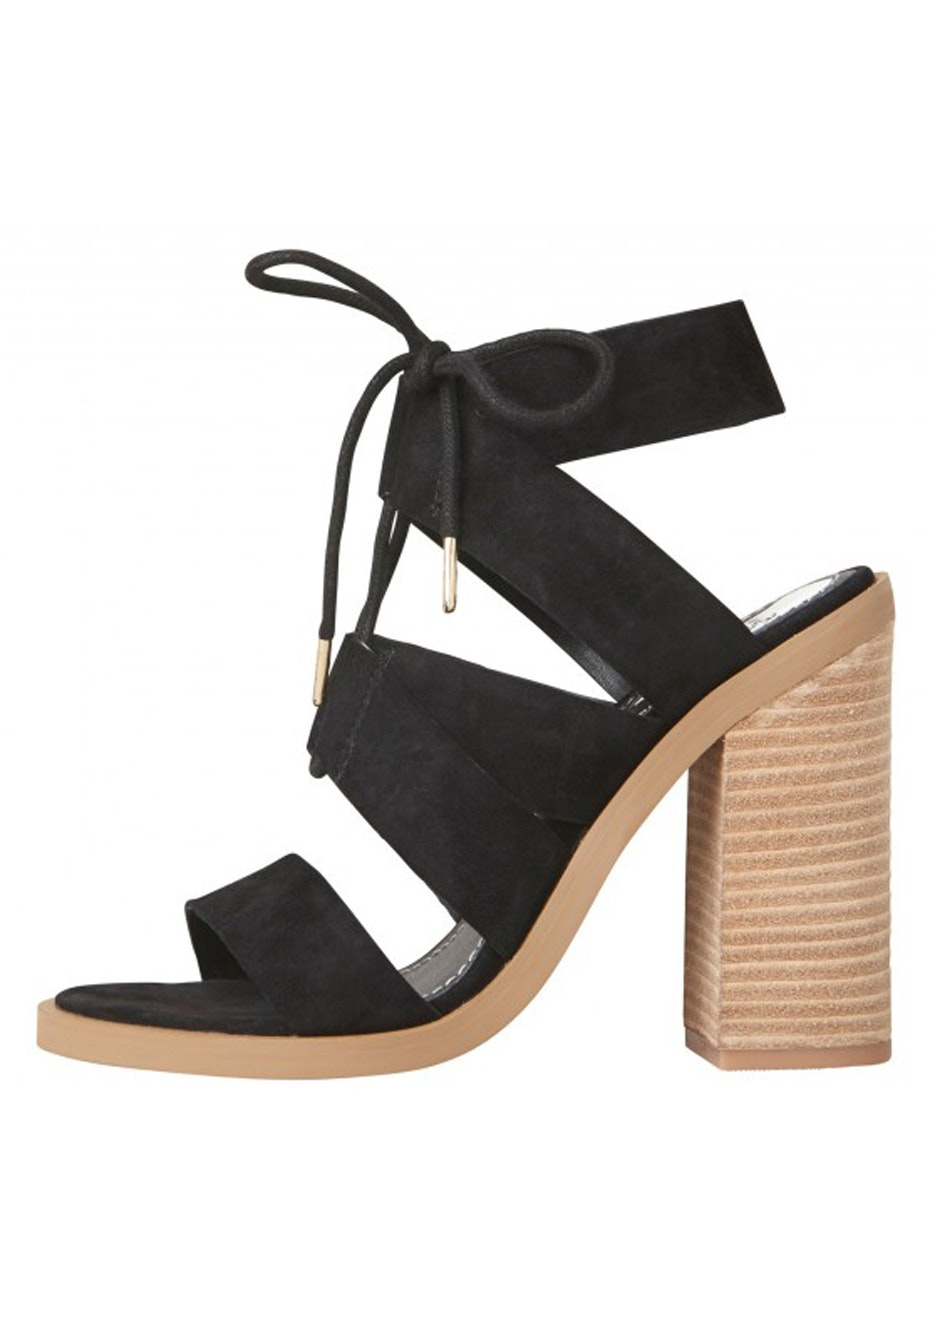 Windsor Smith - Tyra - Black Suede